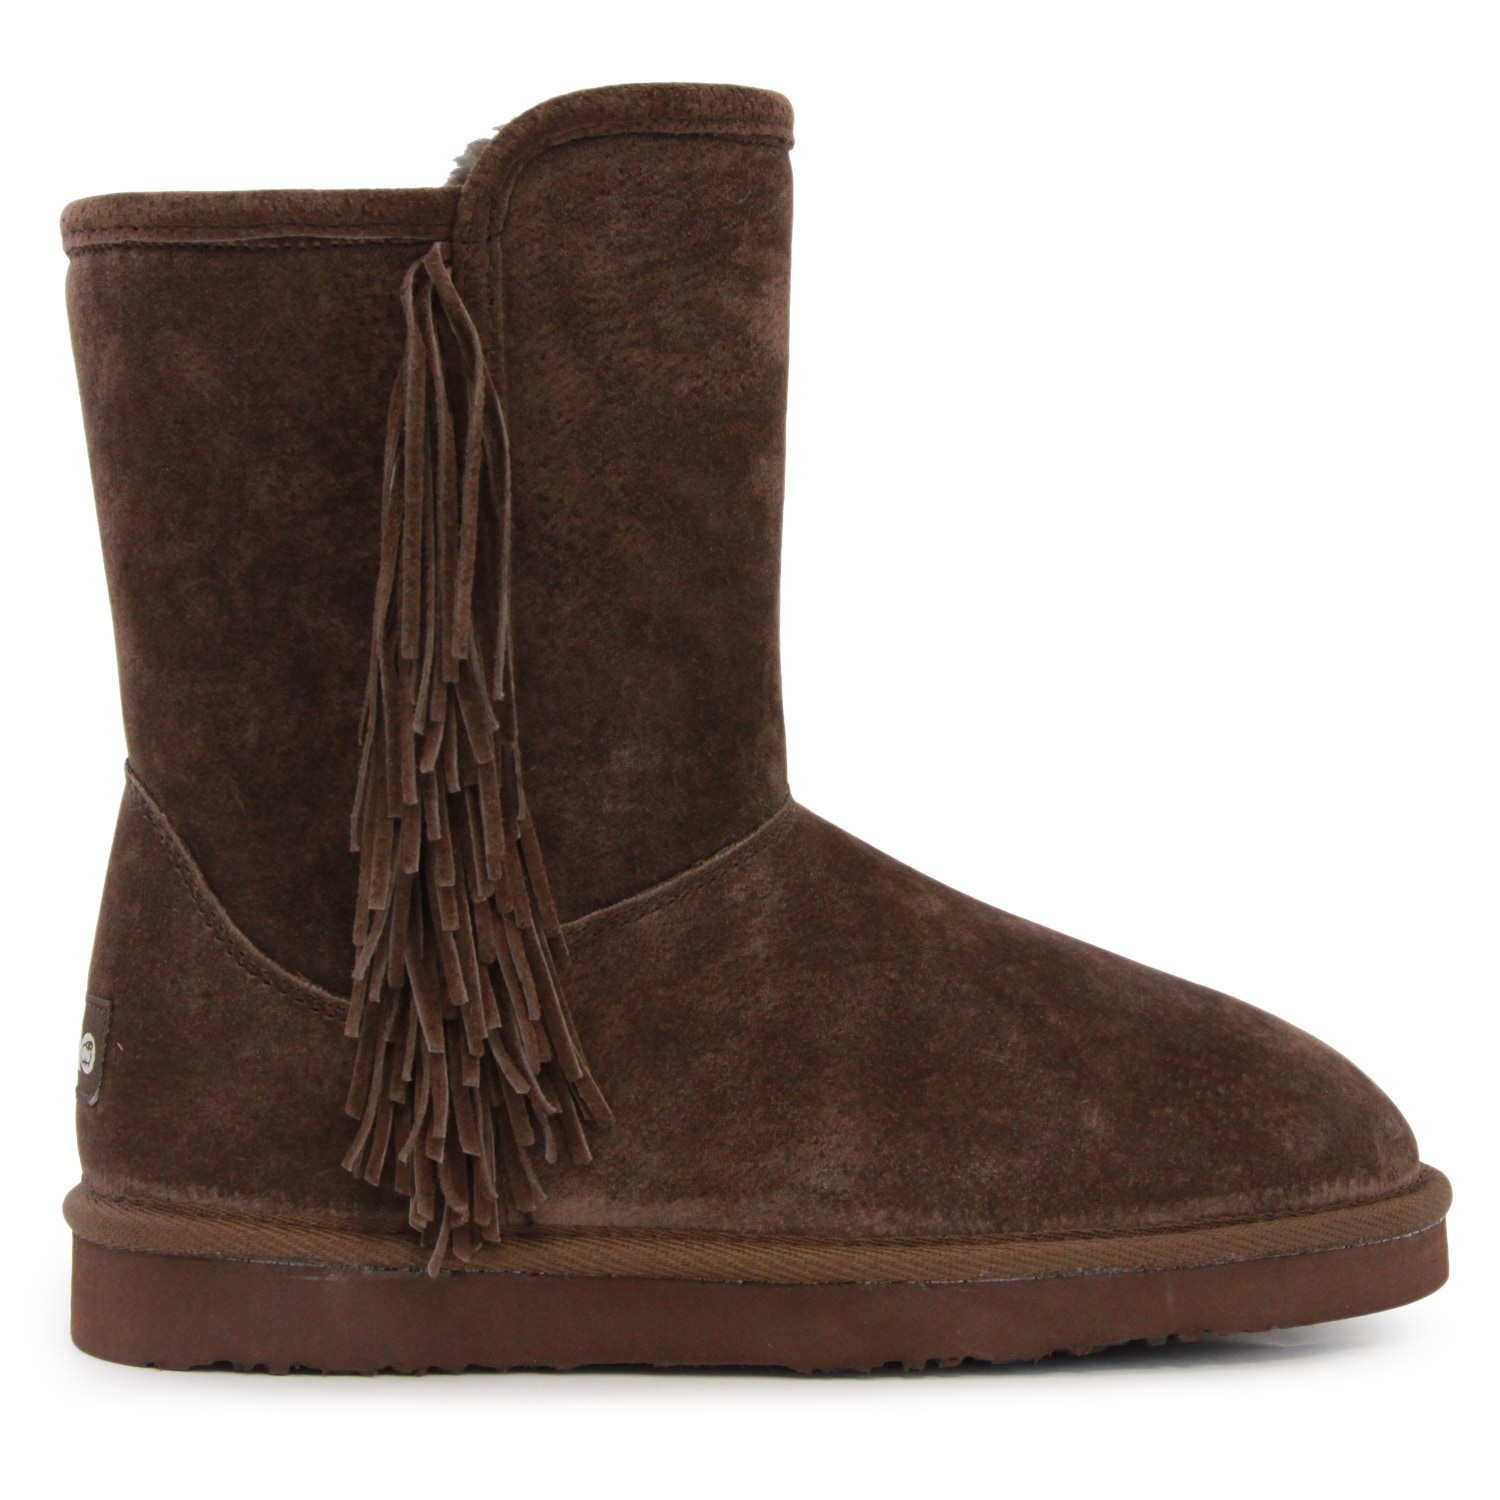 Lamo Sellas Brown Suede Mid-calf Boots by Overstock